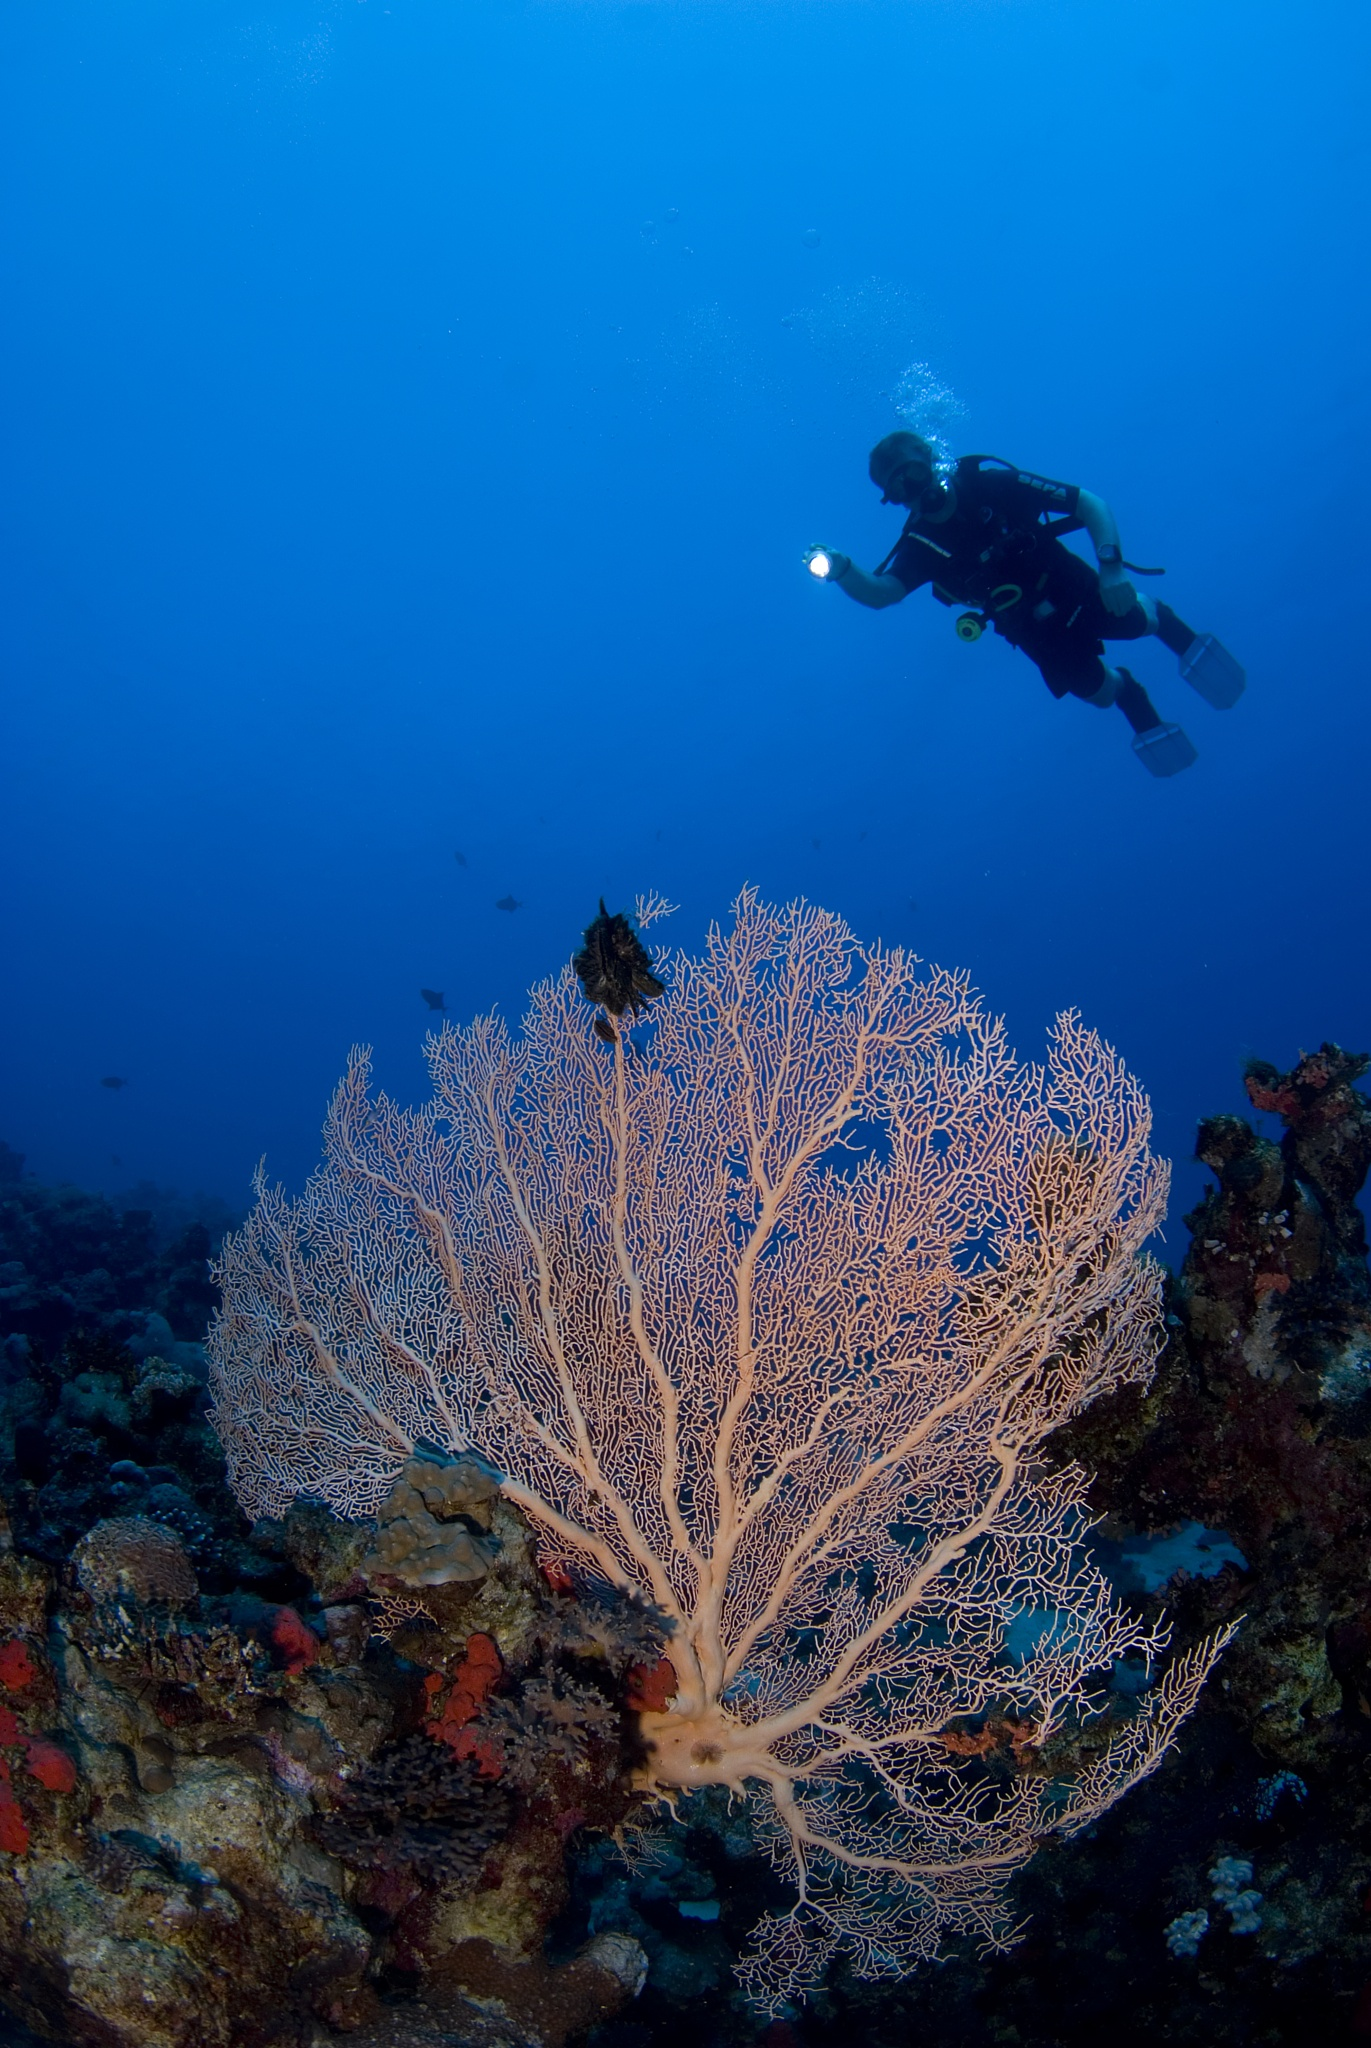 Diver and a Gorgonia by Ilan Ben Tov